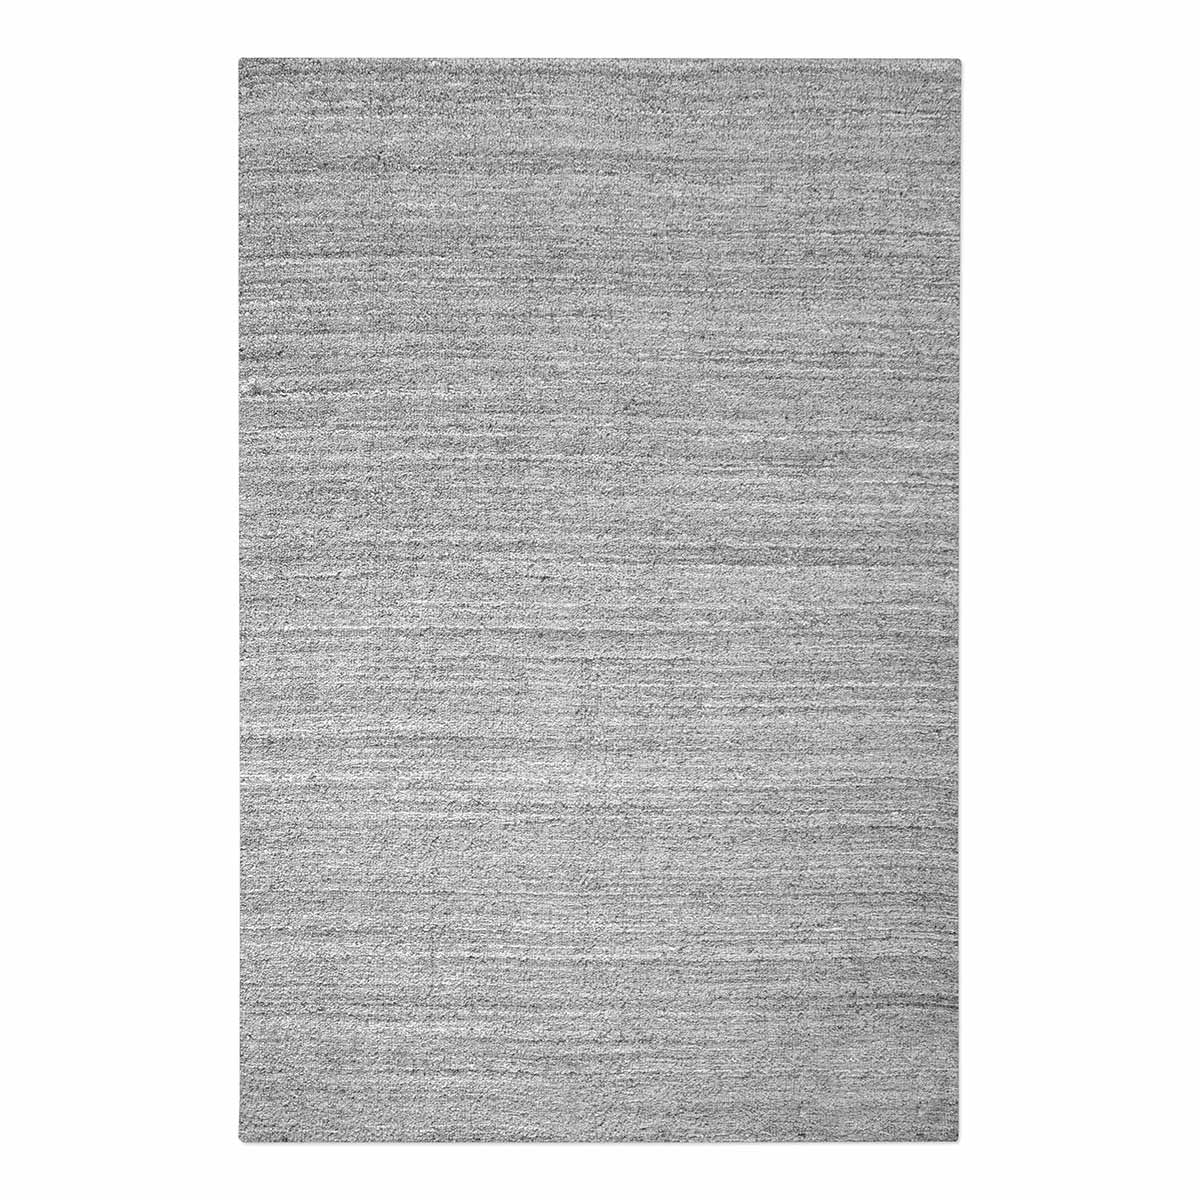 Uttermost Midas 8 x 10 Rug - Light Gray